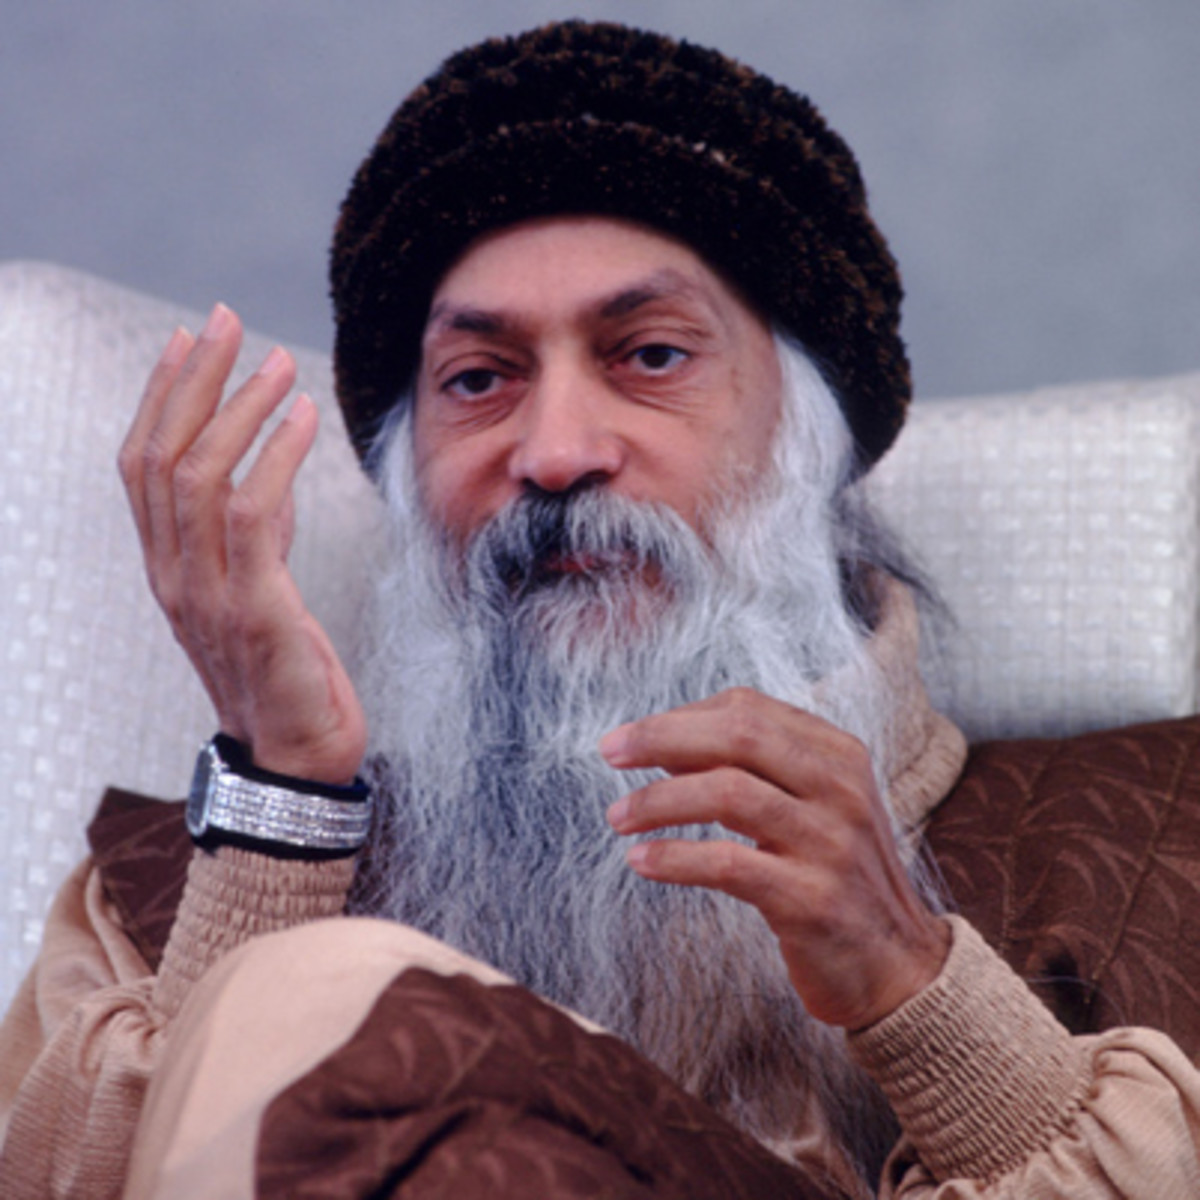 33155 05: Bhagwan Shree Rajneesh leads his disciples in a devotional ritual at the Rajneeshpuram Ranch October 14, 1984 in Eastern Oregon. Charismatic Indian Guru Rajneesh and his followers settled on the 65,000 acre ranch in the hopes of seeking and spreading the message of religious enlightenment, but encountered resistance from local communities and anti-cult groups. (Photo by Matthew Naythons/Liaison)